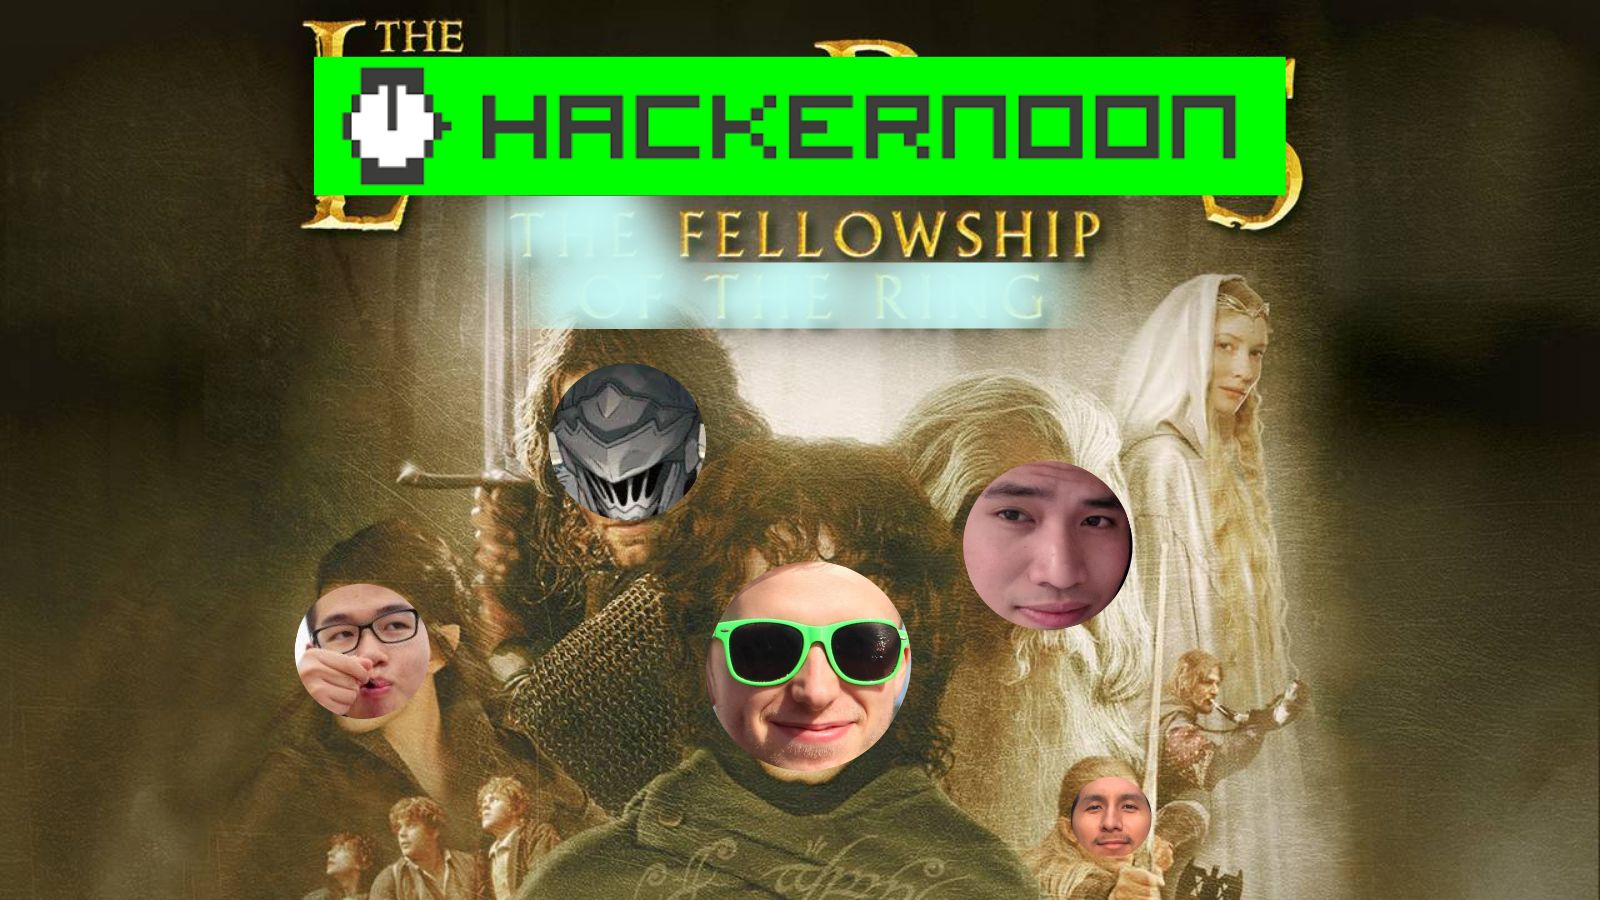 /what-did-you-think-of-the-hackernoon-blogging-fellowship-dv1737au feature image